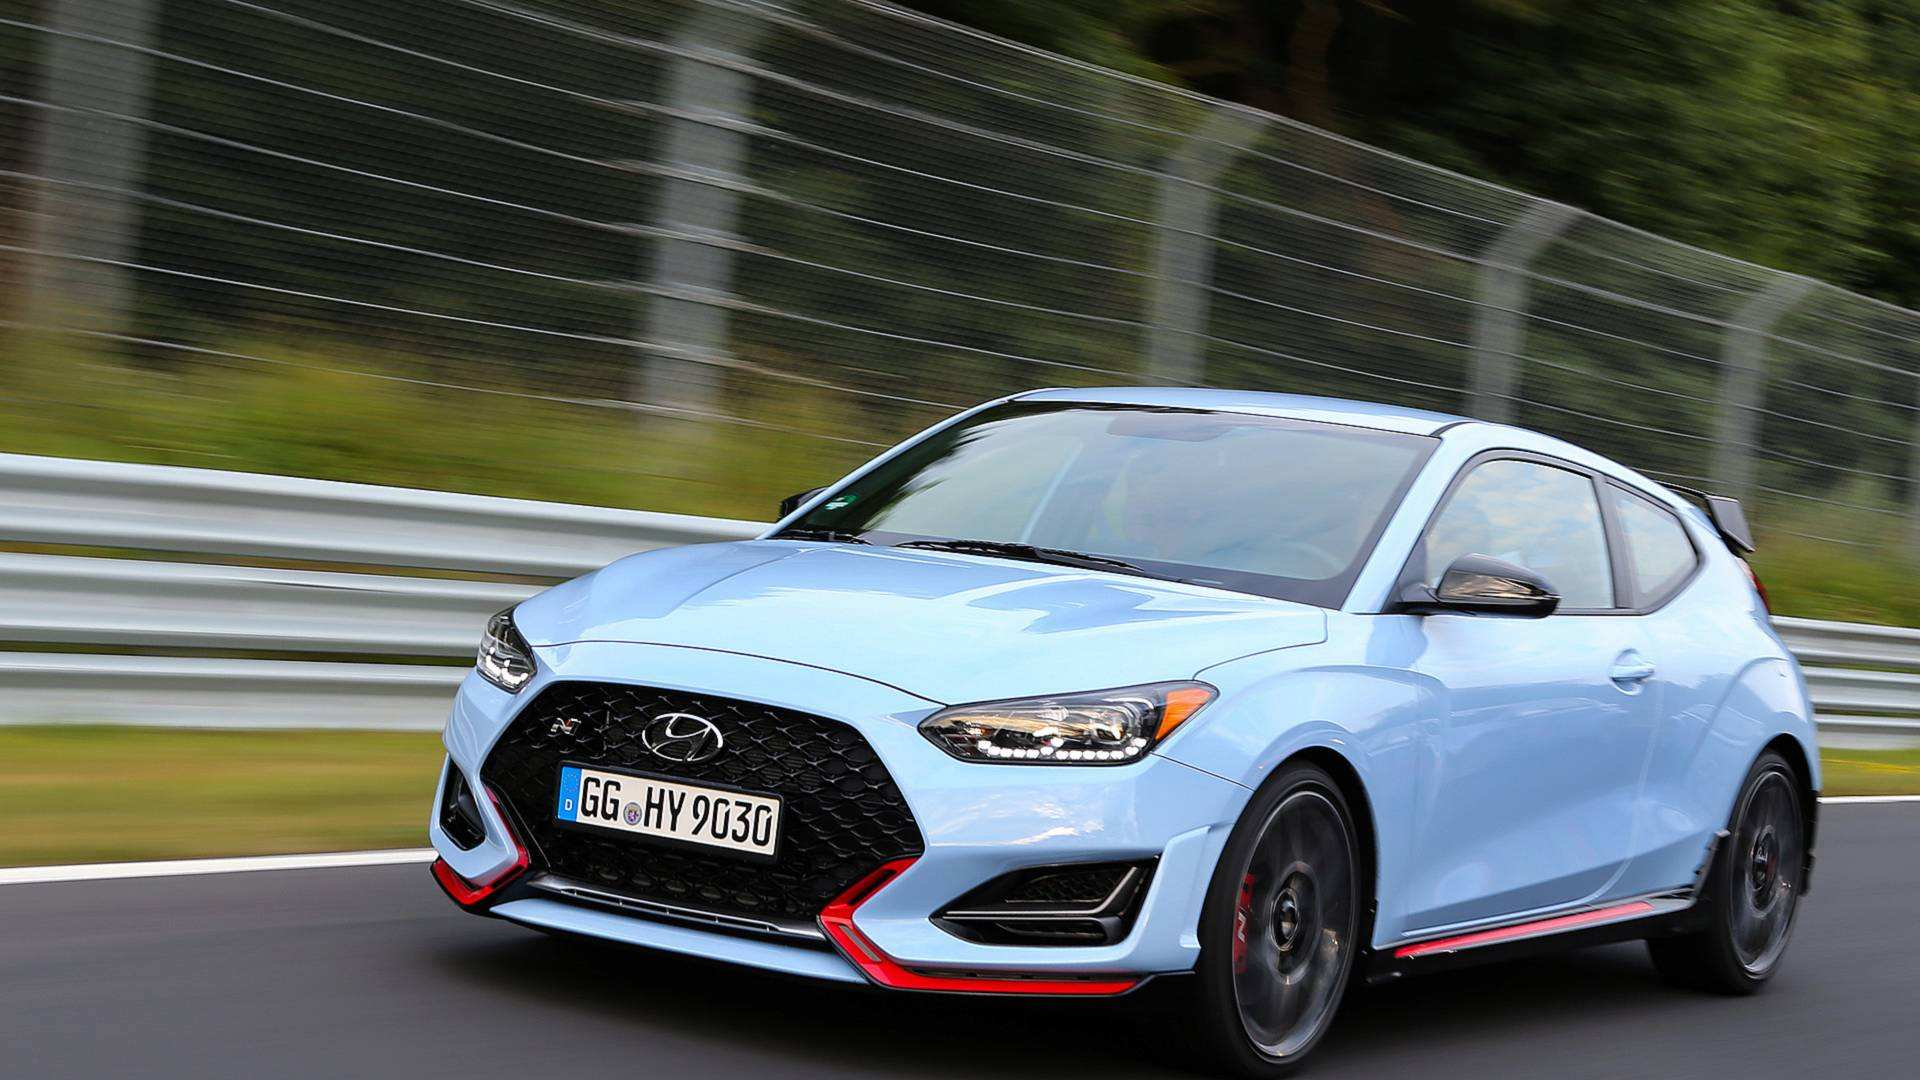 65 Best Review Hyundai Veloster 2020 Style by Hyundai Veloster 2020